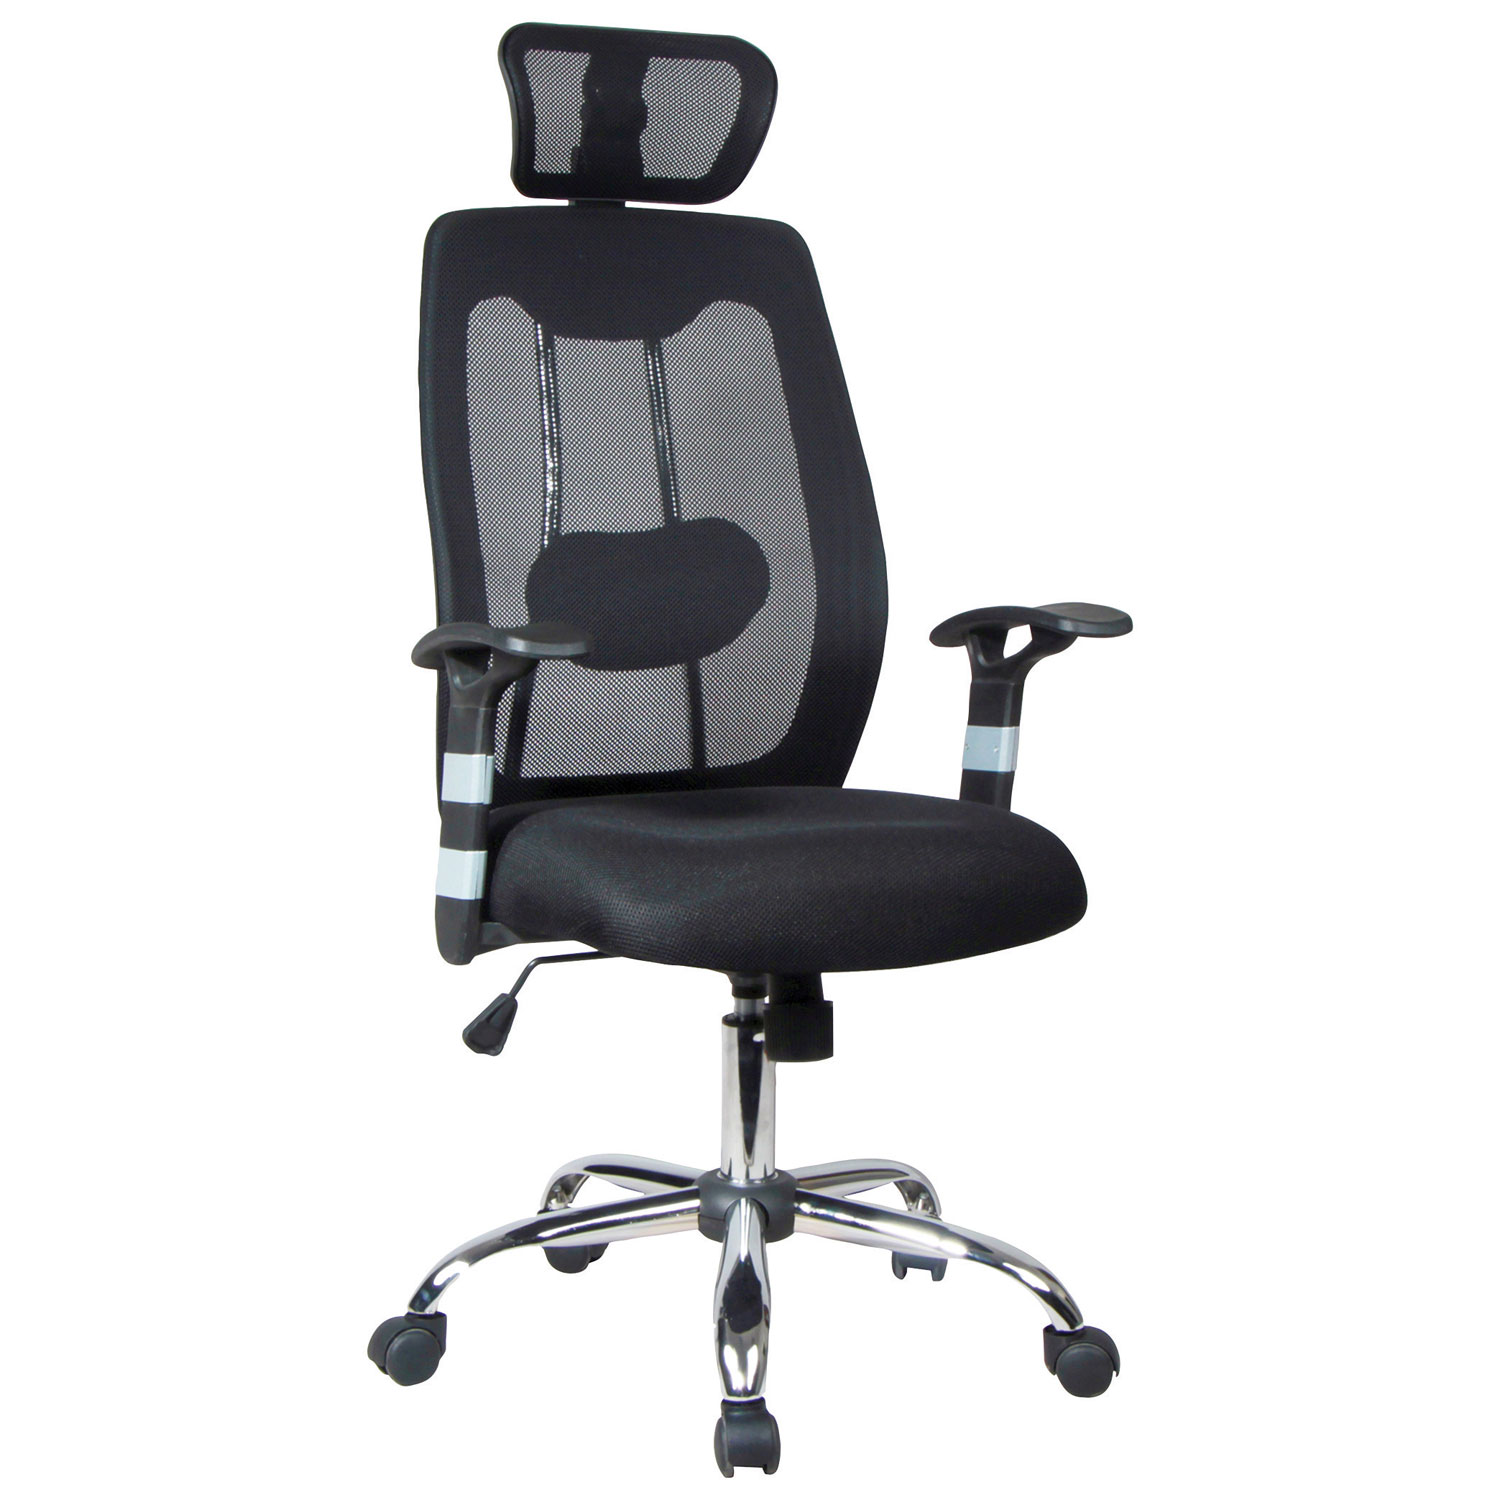 TygerClaw Mesh Manager Chair Black Office Chairs Best Buy Canada